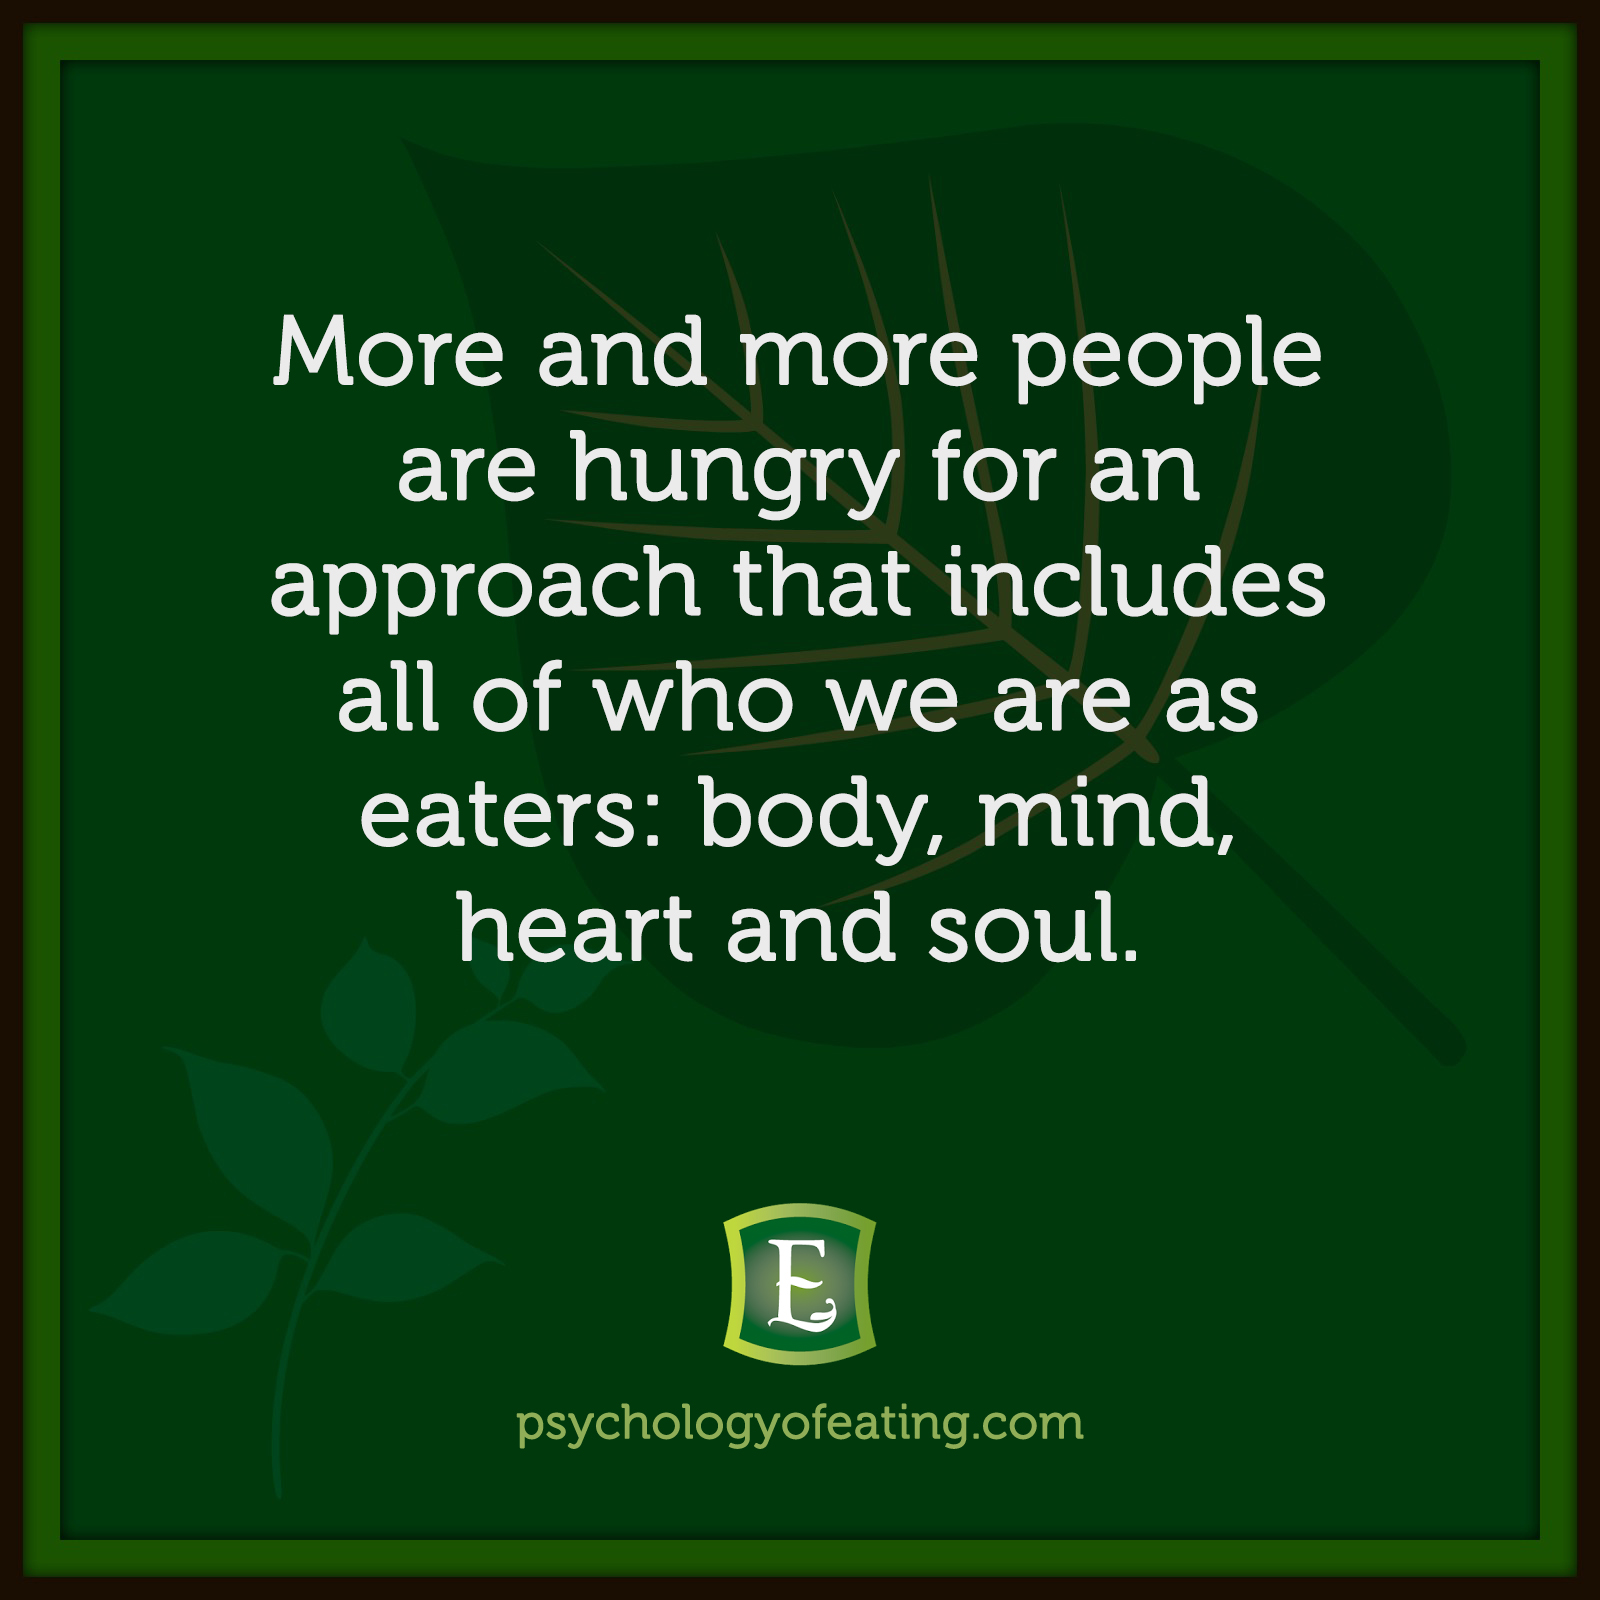 More and more people are hungry for an approach that includes all of who we are as eaters: body, mind, heart and soul. #health #nutrition #eatingpsychology #IPE